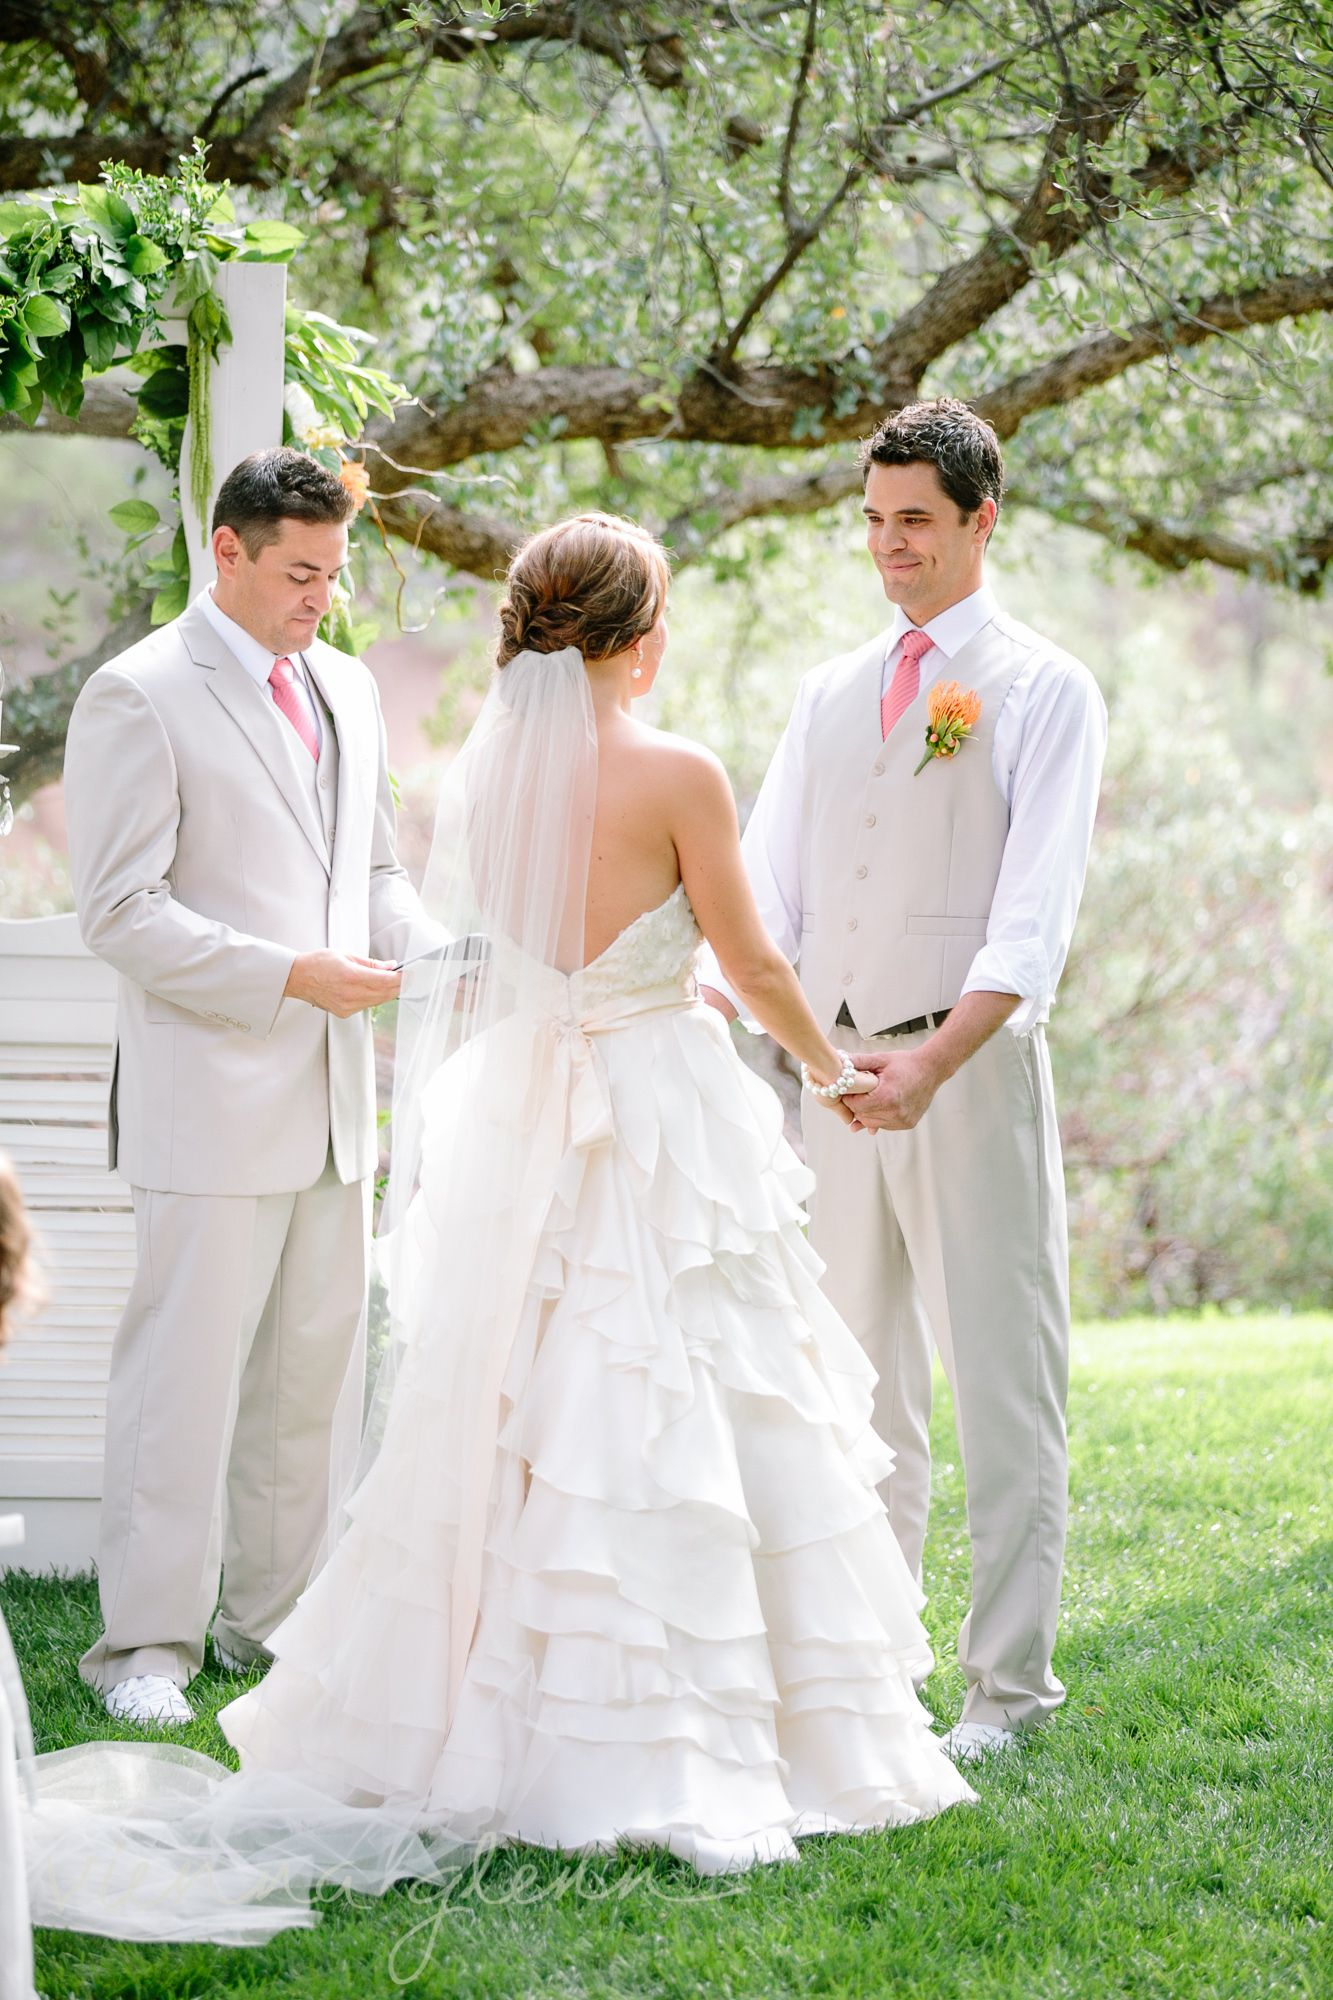 Asking A Friend Or Family Member To Officiate Your Ceremony Start Here Wedding Readingswedding